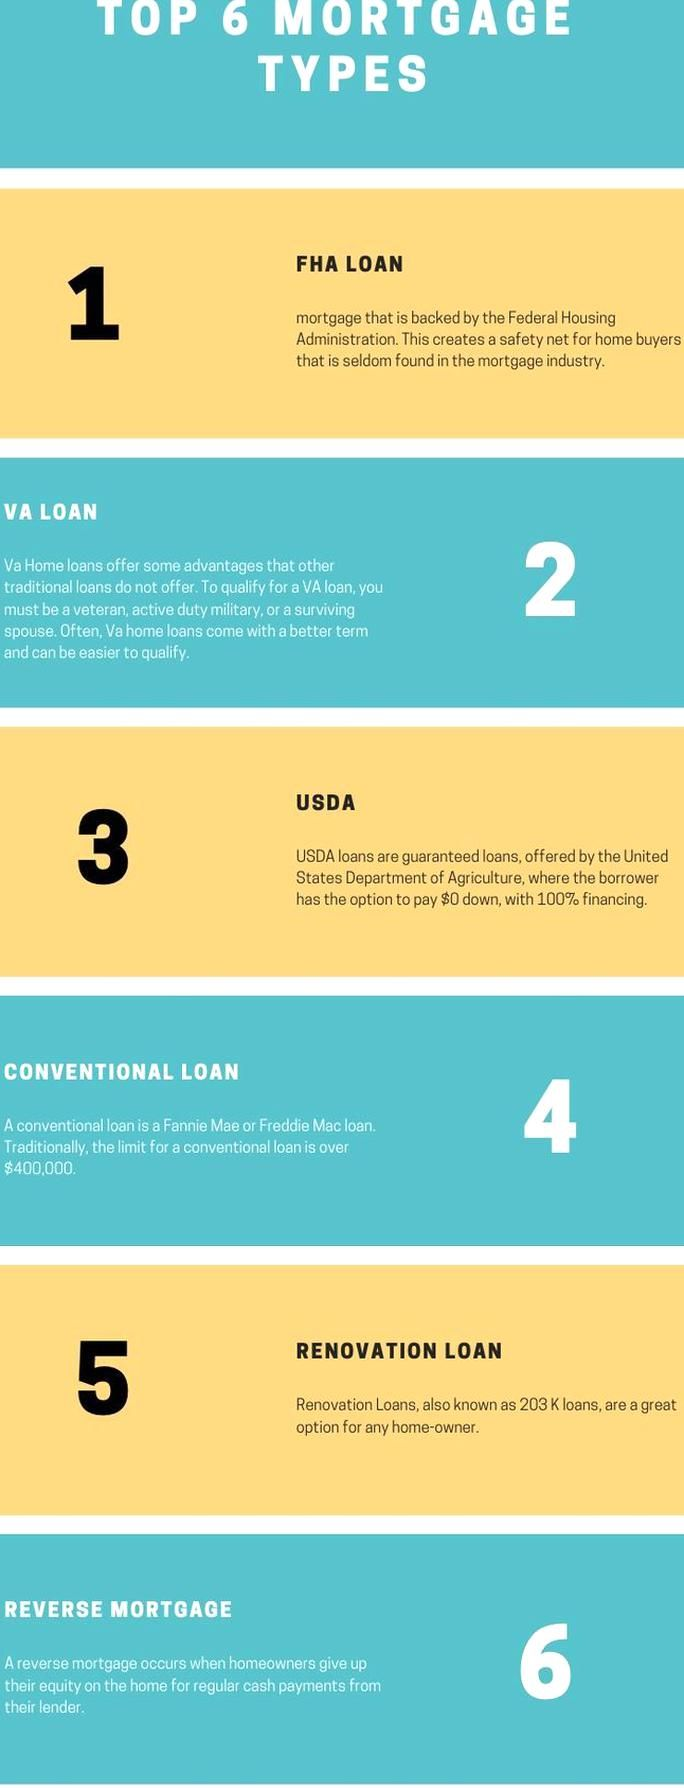 Top 6 Mortgage Loan Types Fha Va Usda And More In 2020 Mortgage Loan Originator Mortgage Loans Mortgage Tips